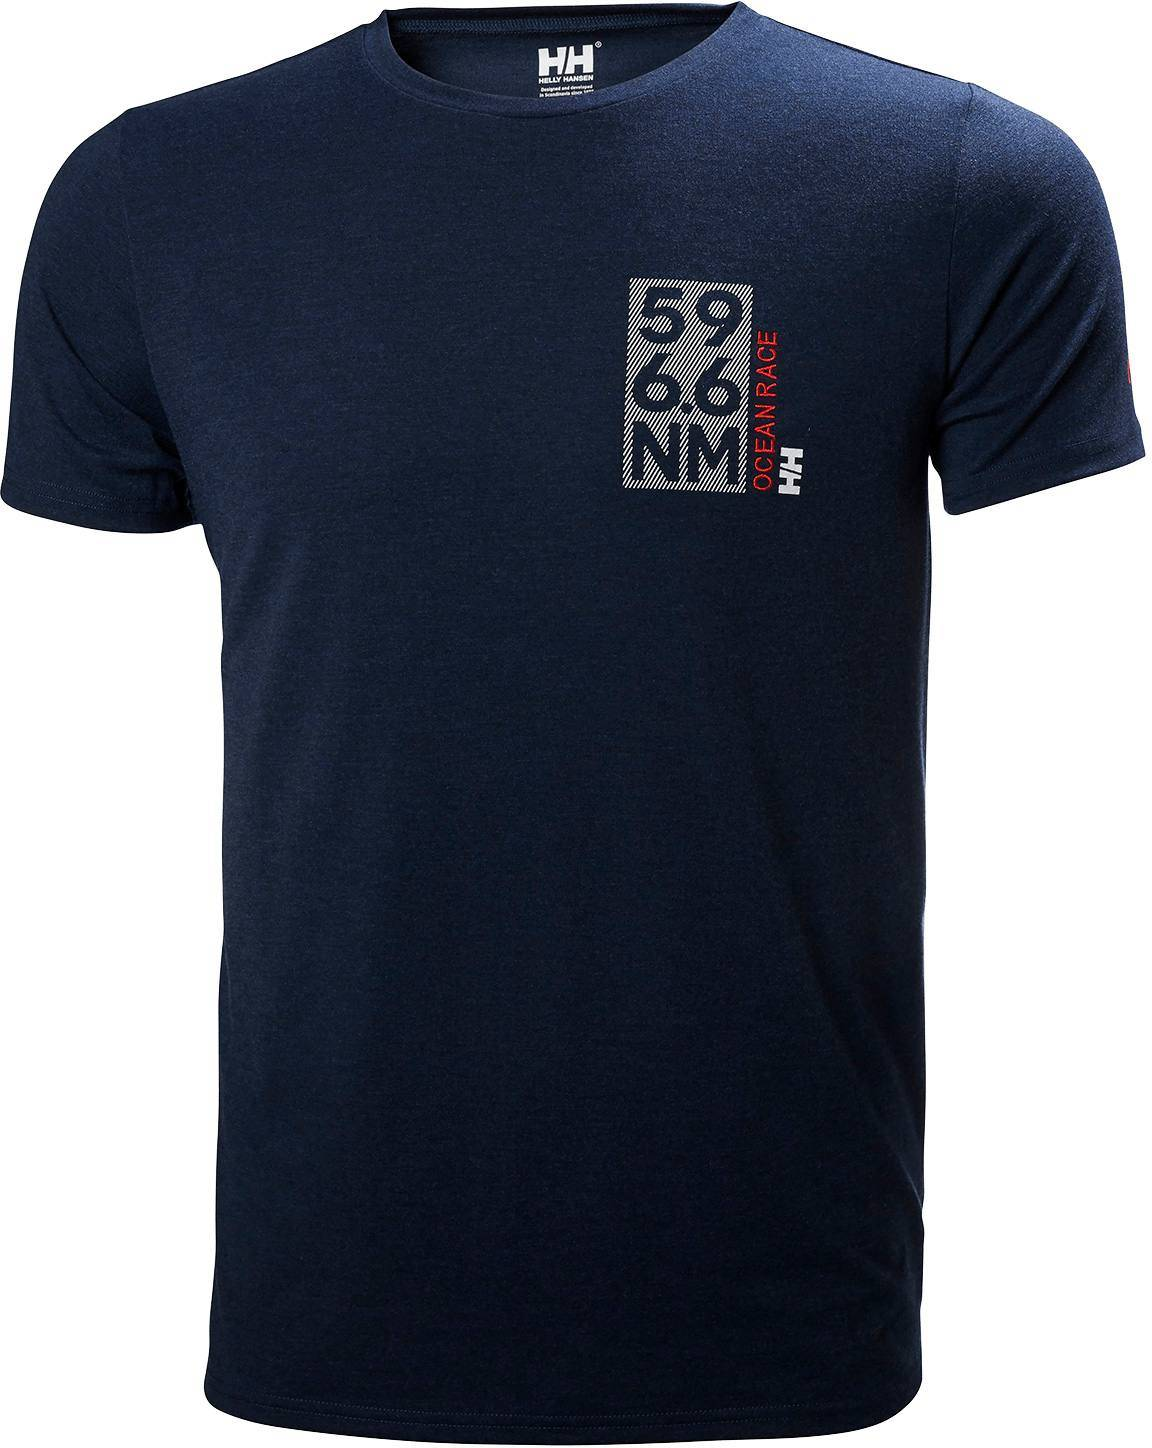 Helly Hansen HP Shore Tee Navy L